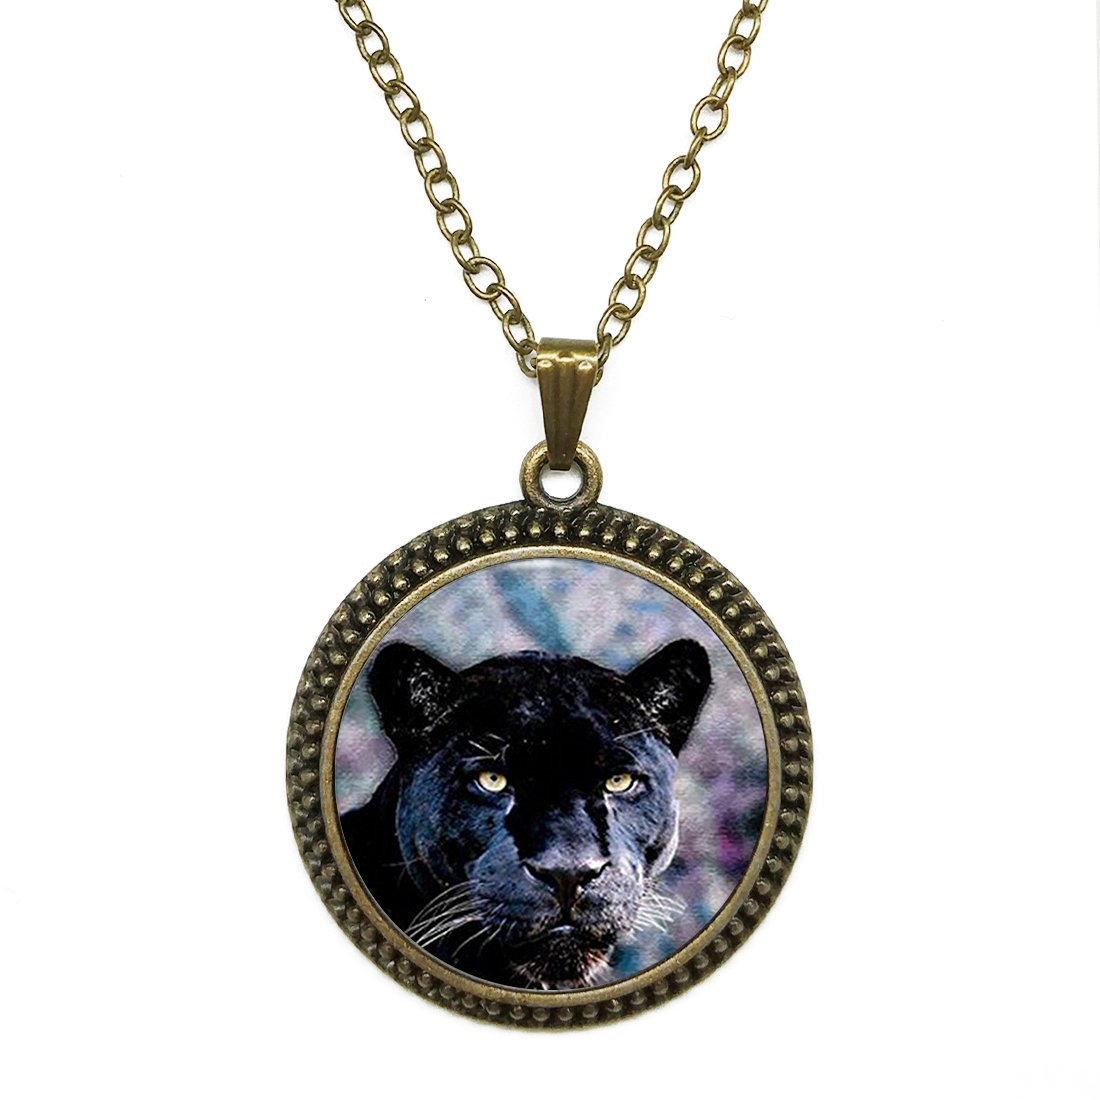 Fashion Necklace Pendant Jewelry Black Panther Vintage Glass Dome Cabochon Steampunk Bronze Necklace by Aola